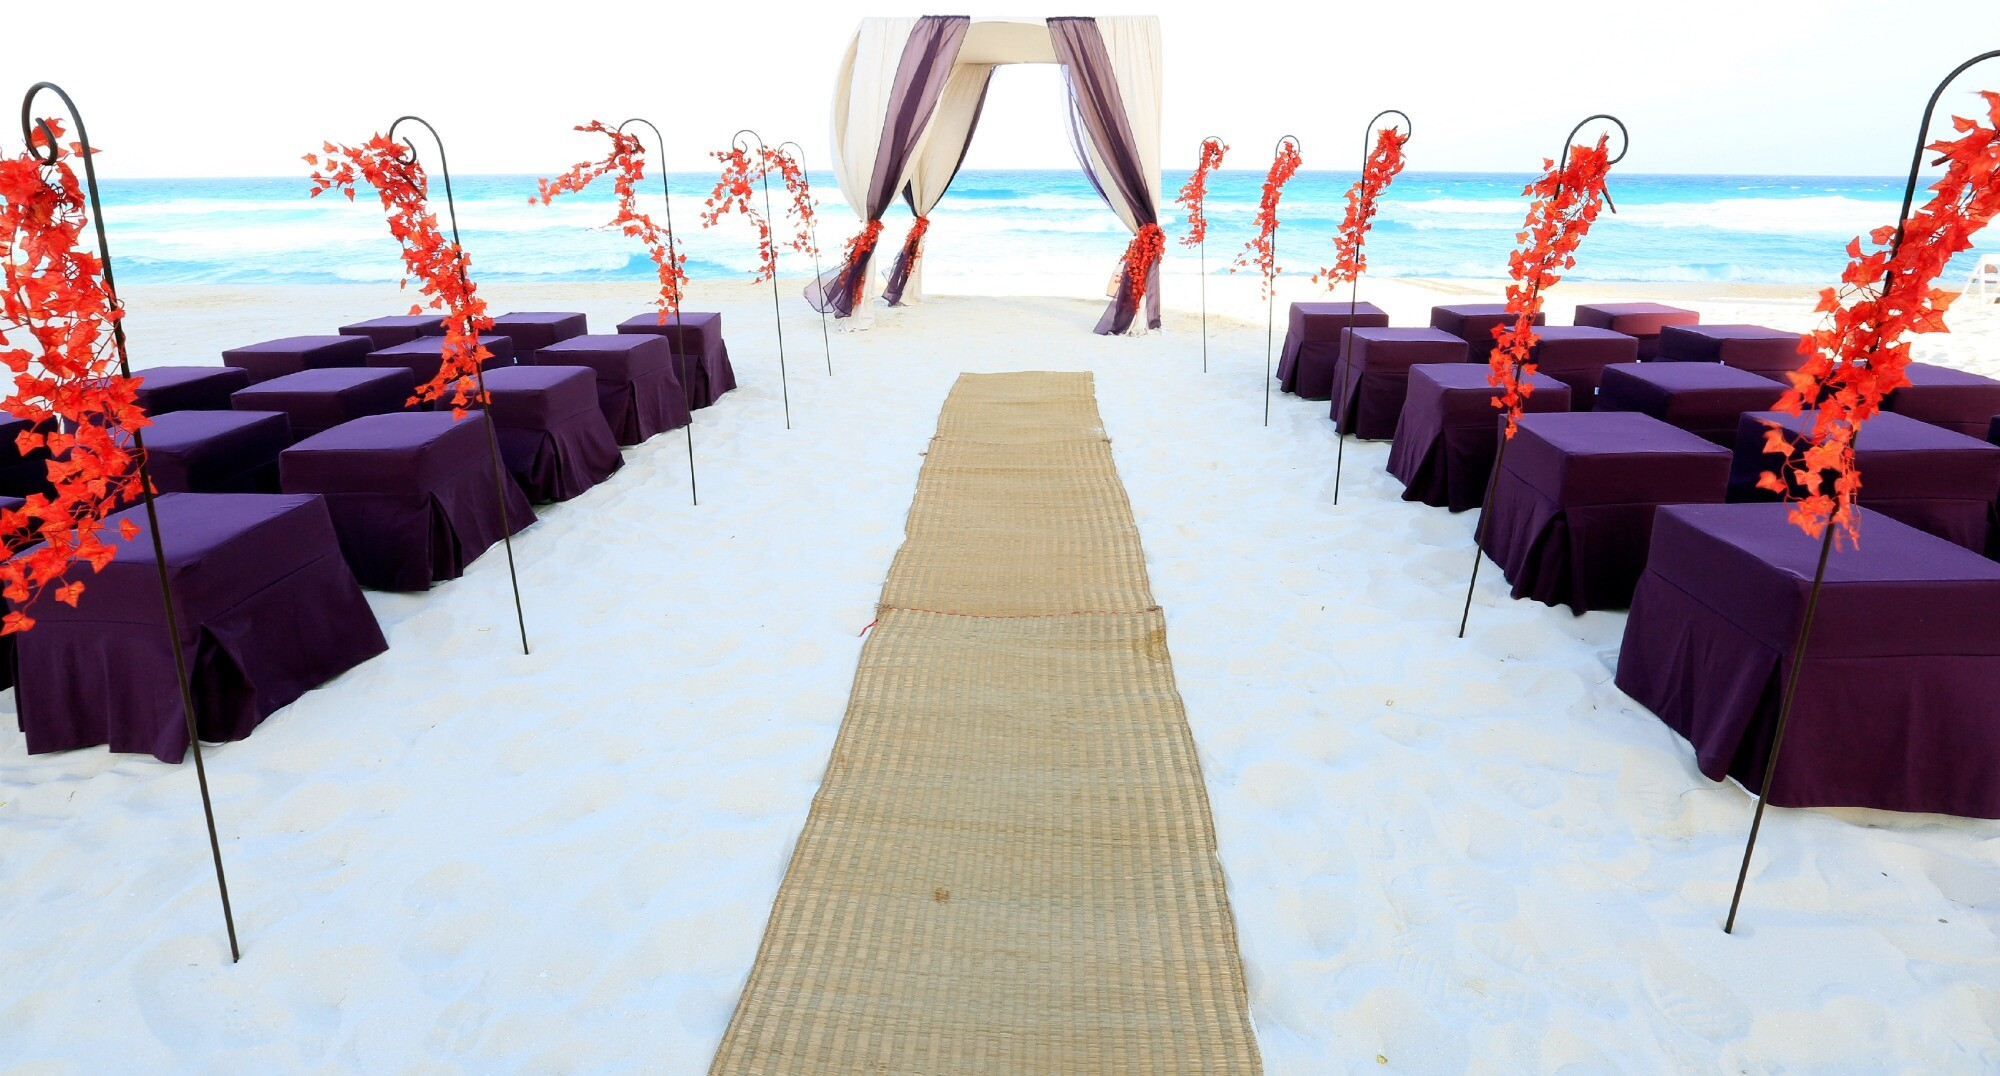 Sandos Cancun destination beach wedding resort